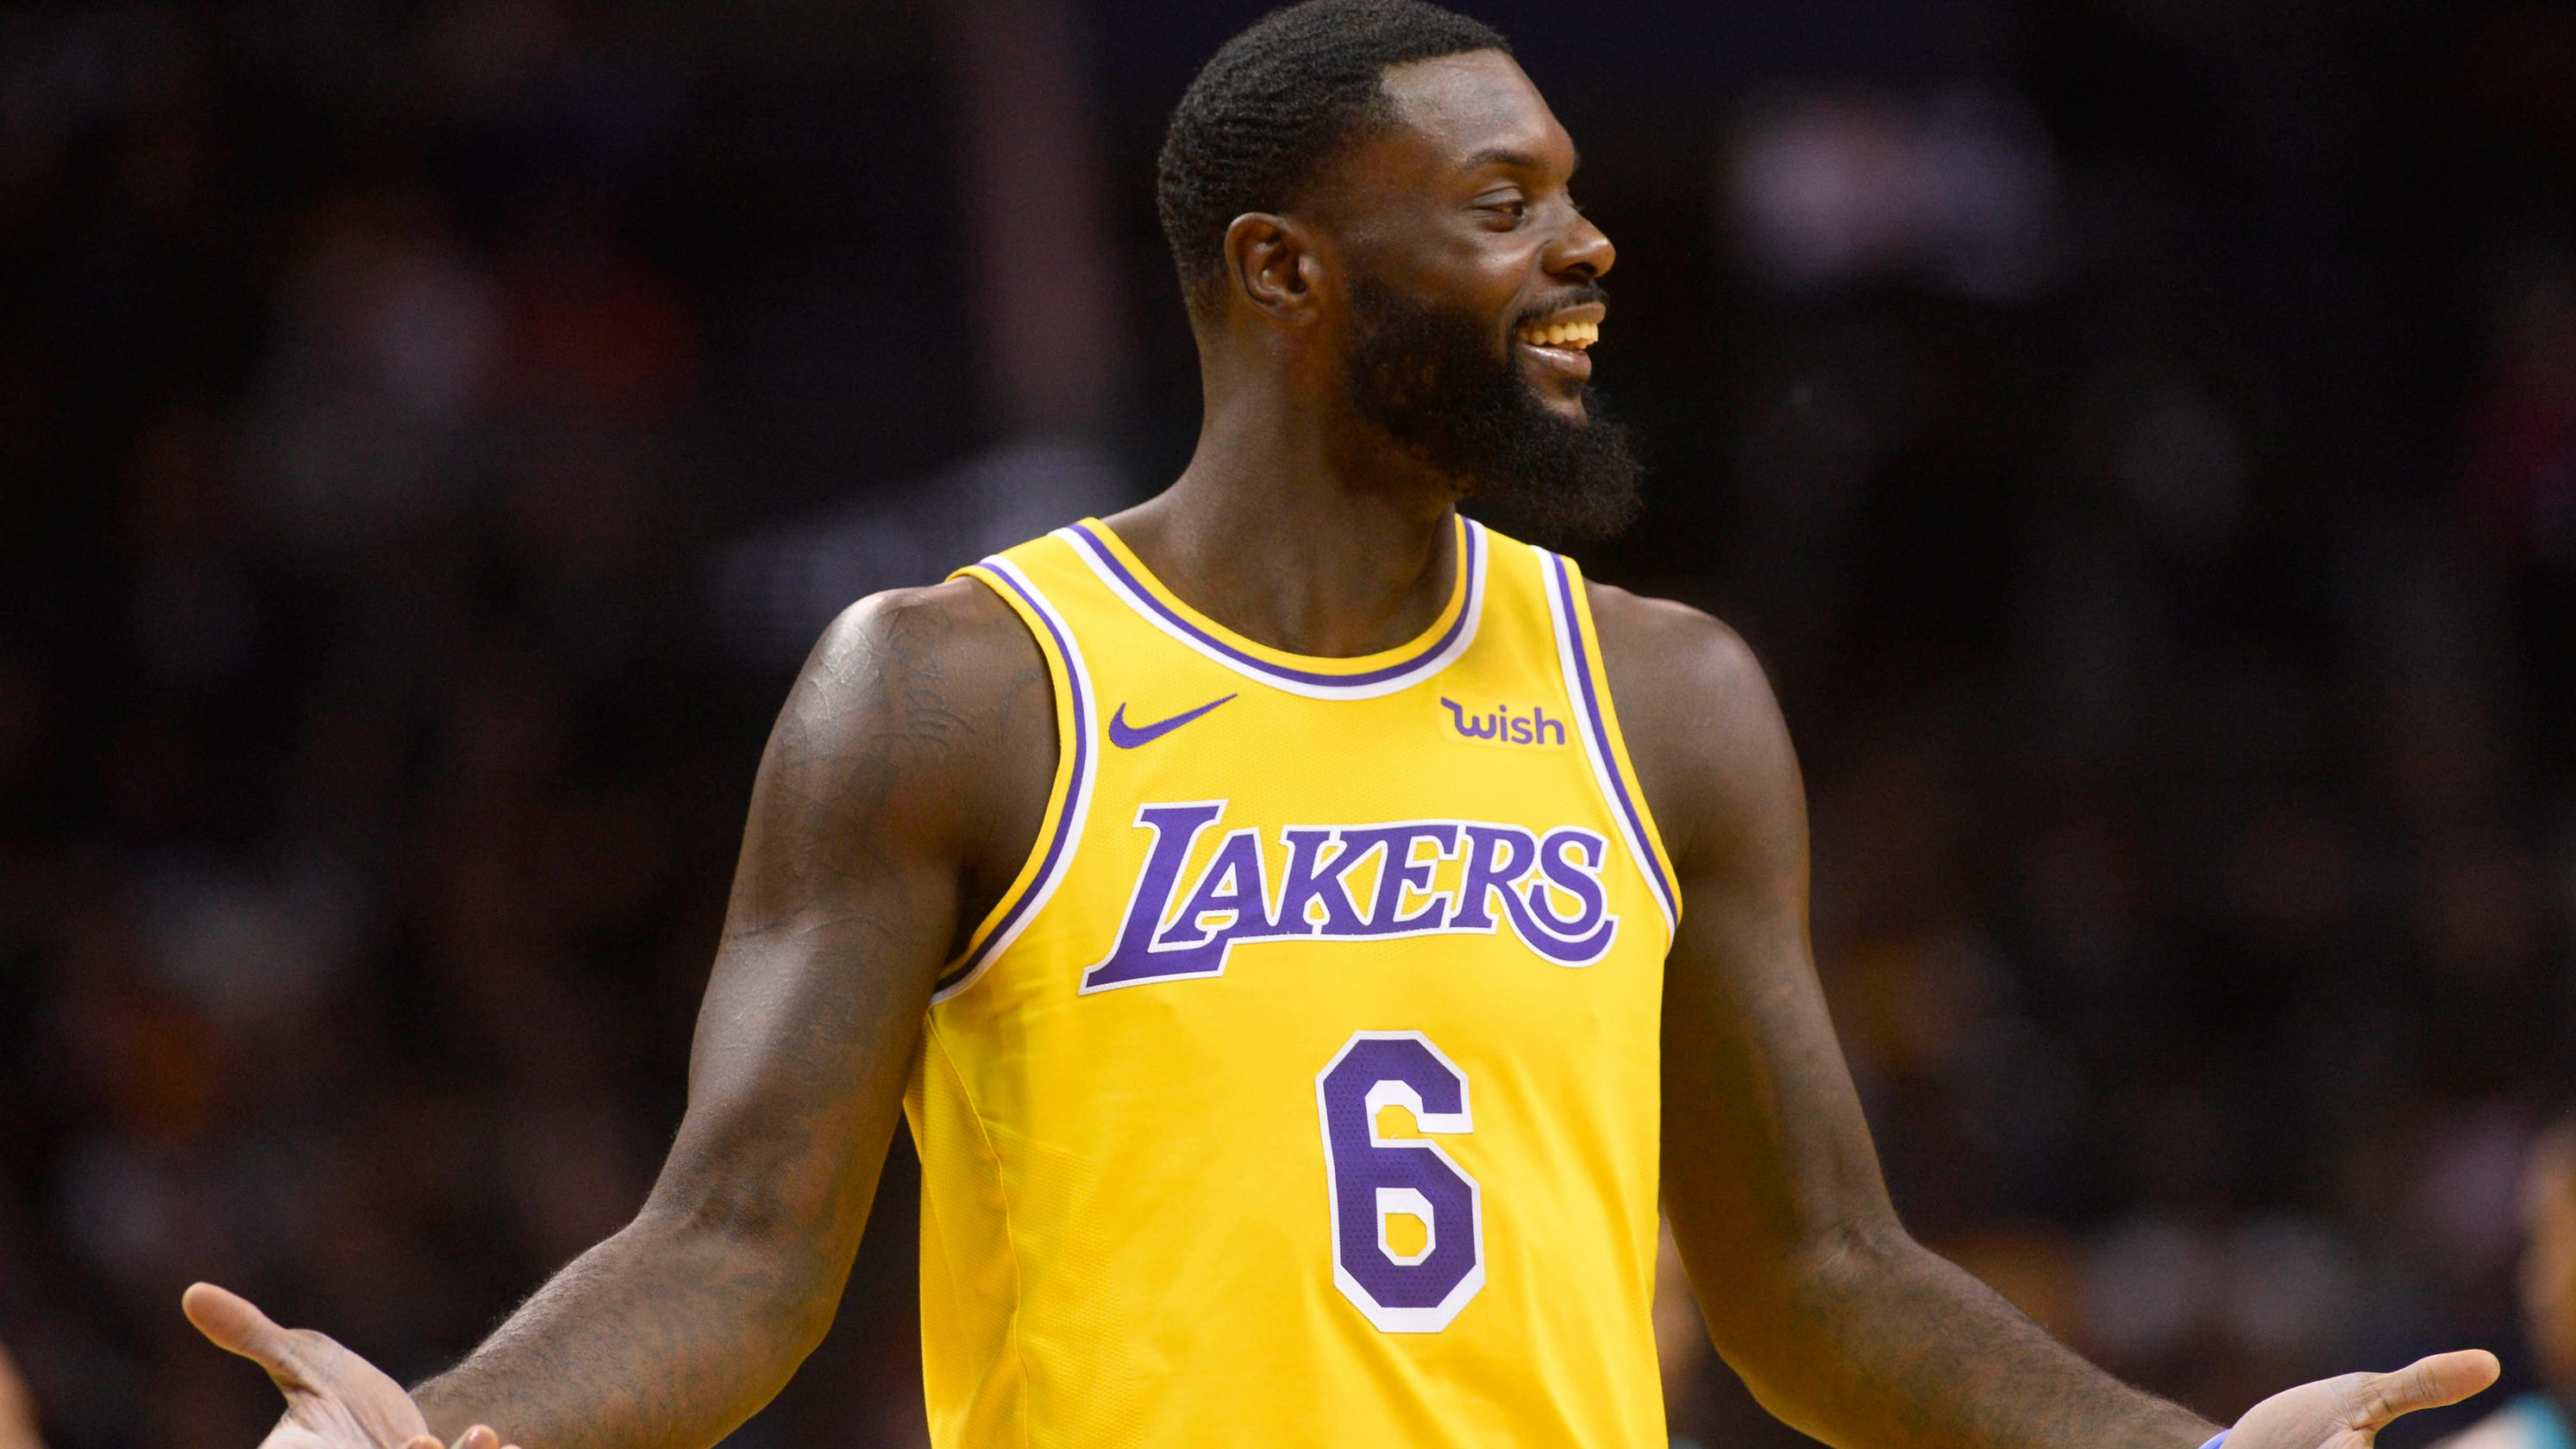 fc024a4d8 Lakers  Lance Stephenson gets technical foul for playing air guitar